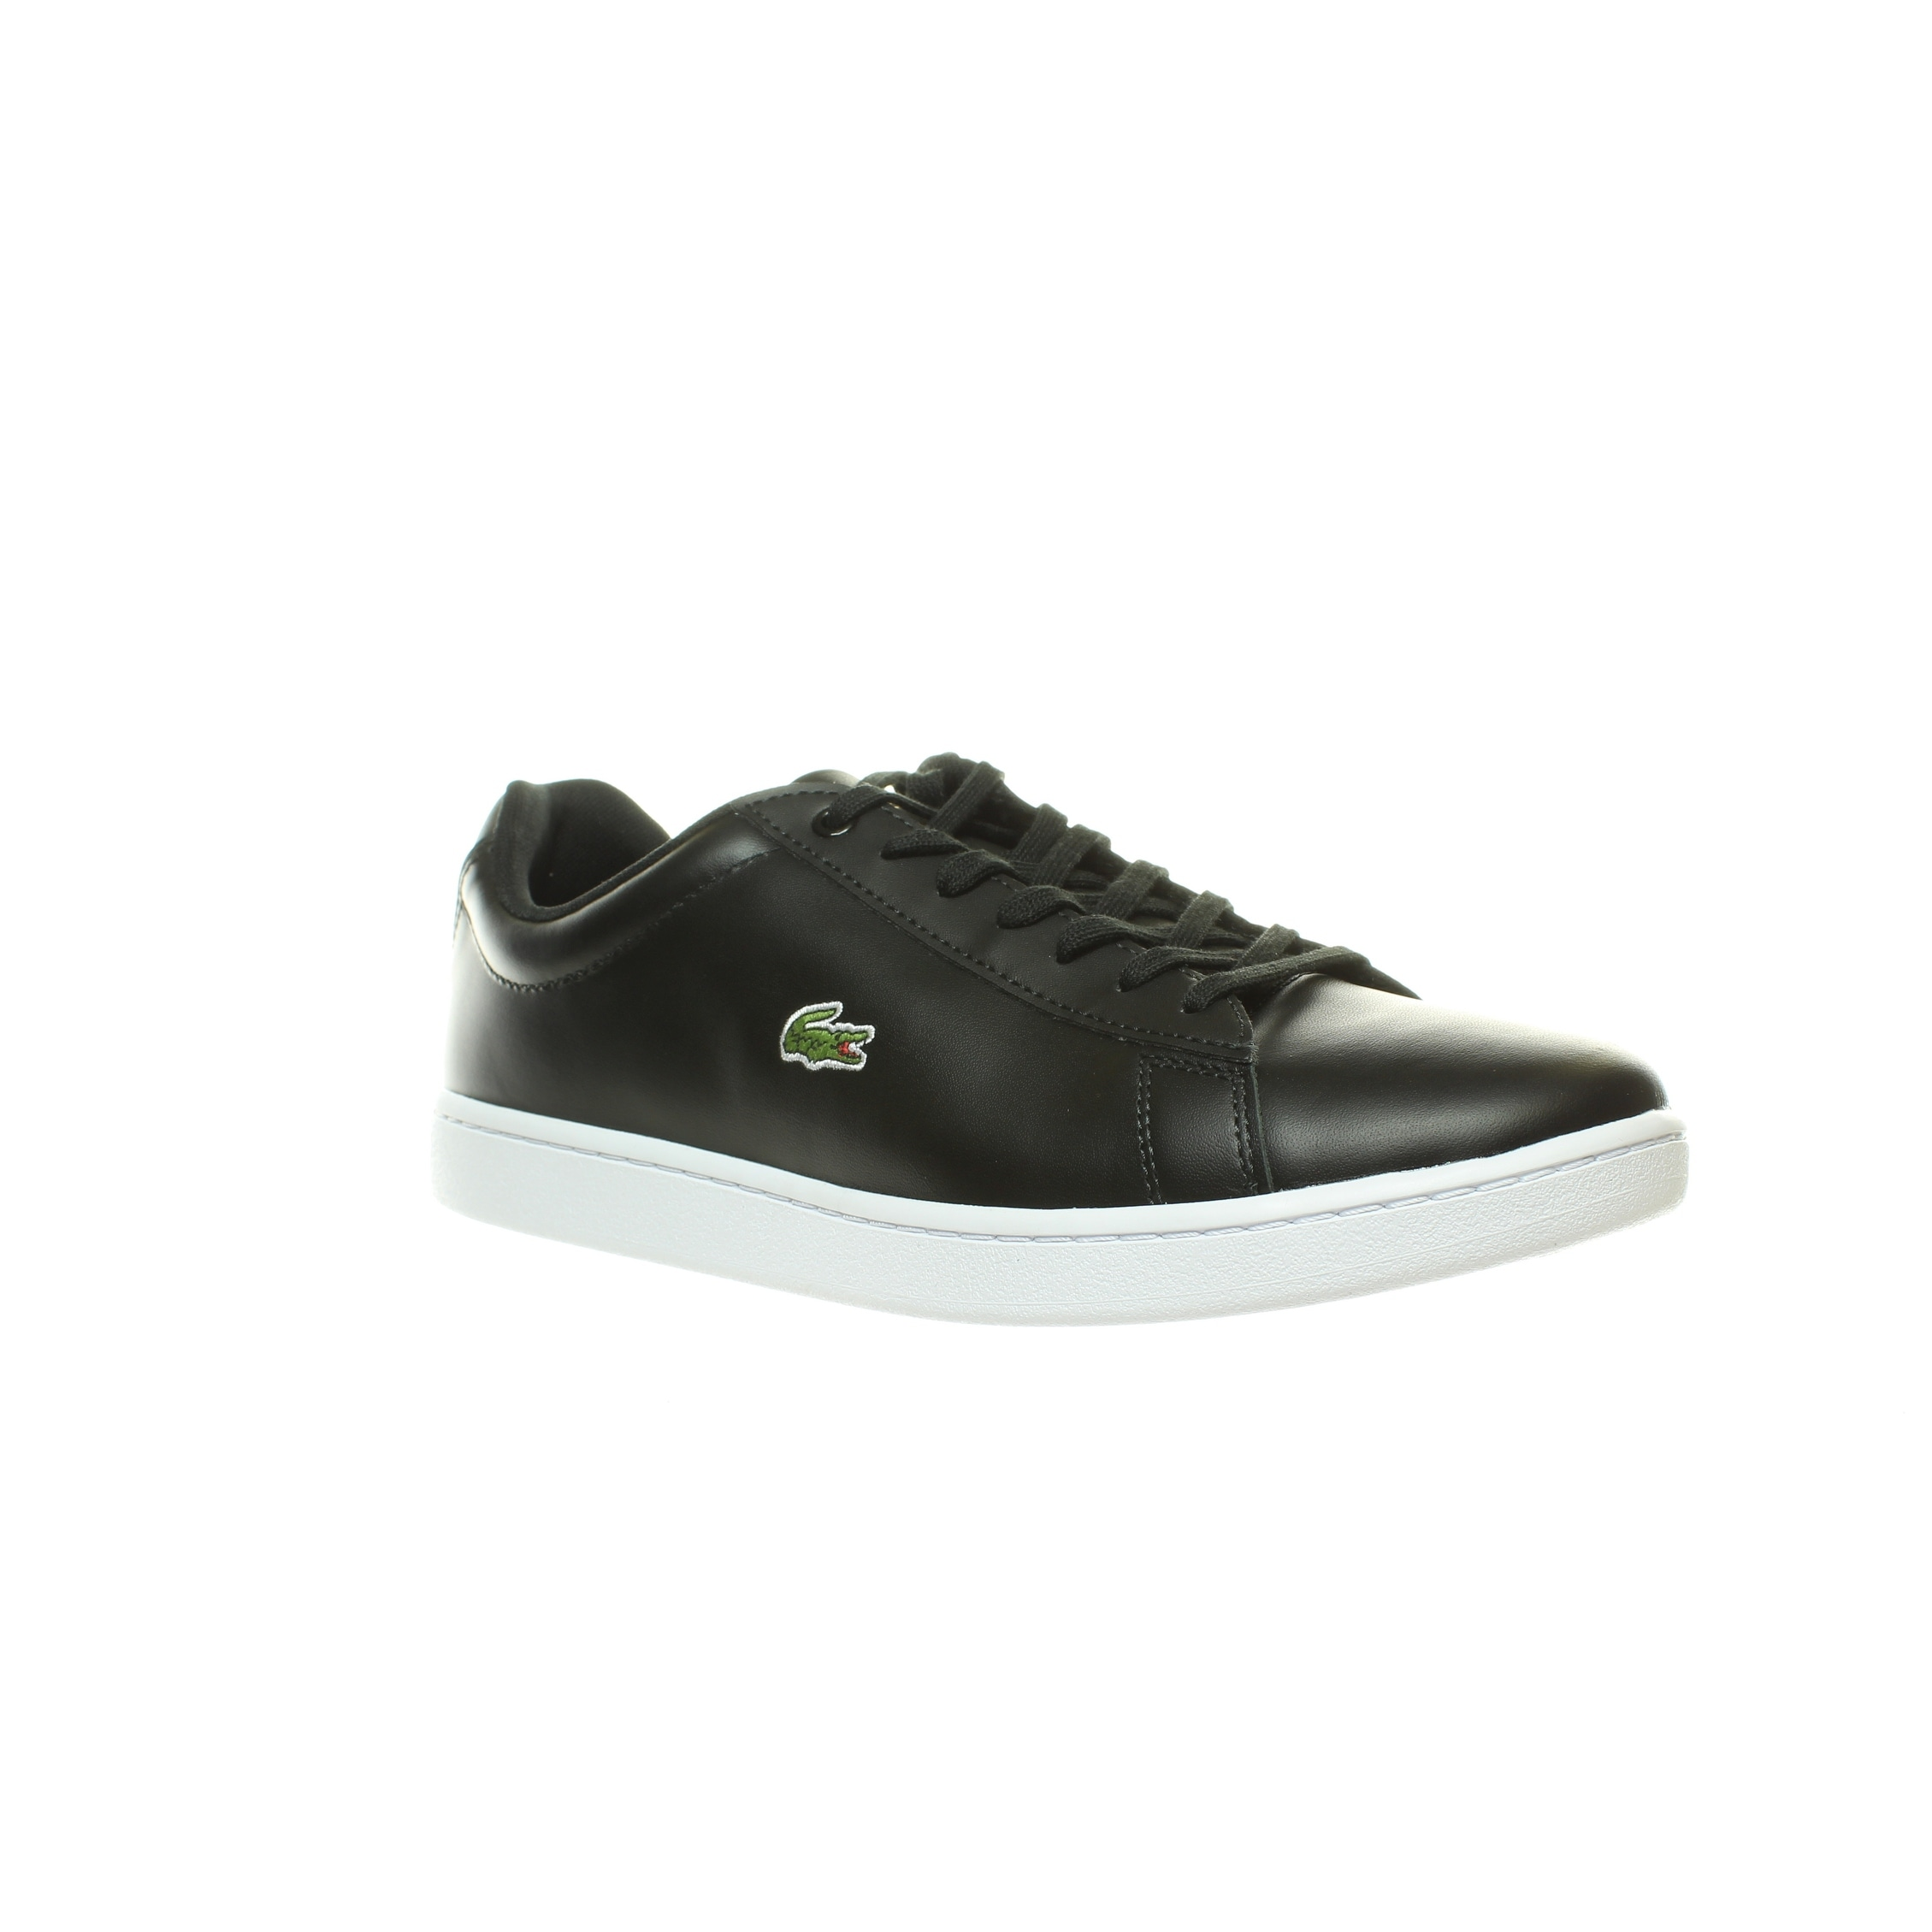 competitive price 01c61 26432 Lacoste Womens Hydez 119 Black/Gold Fashion Sneaker Size 10